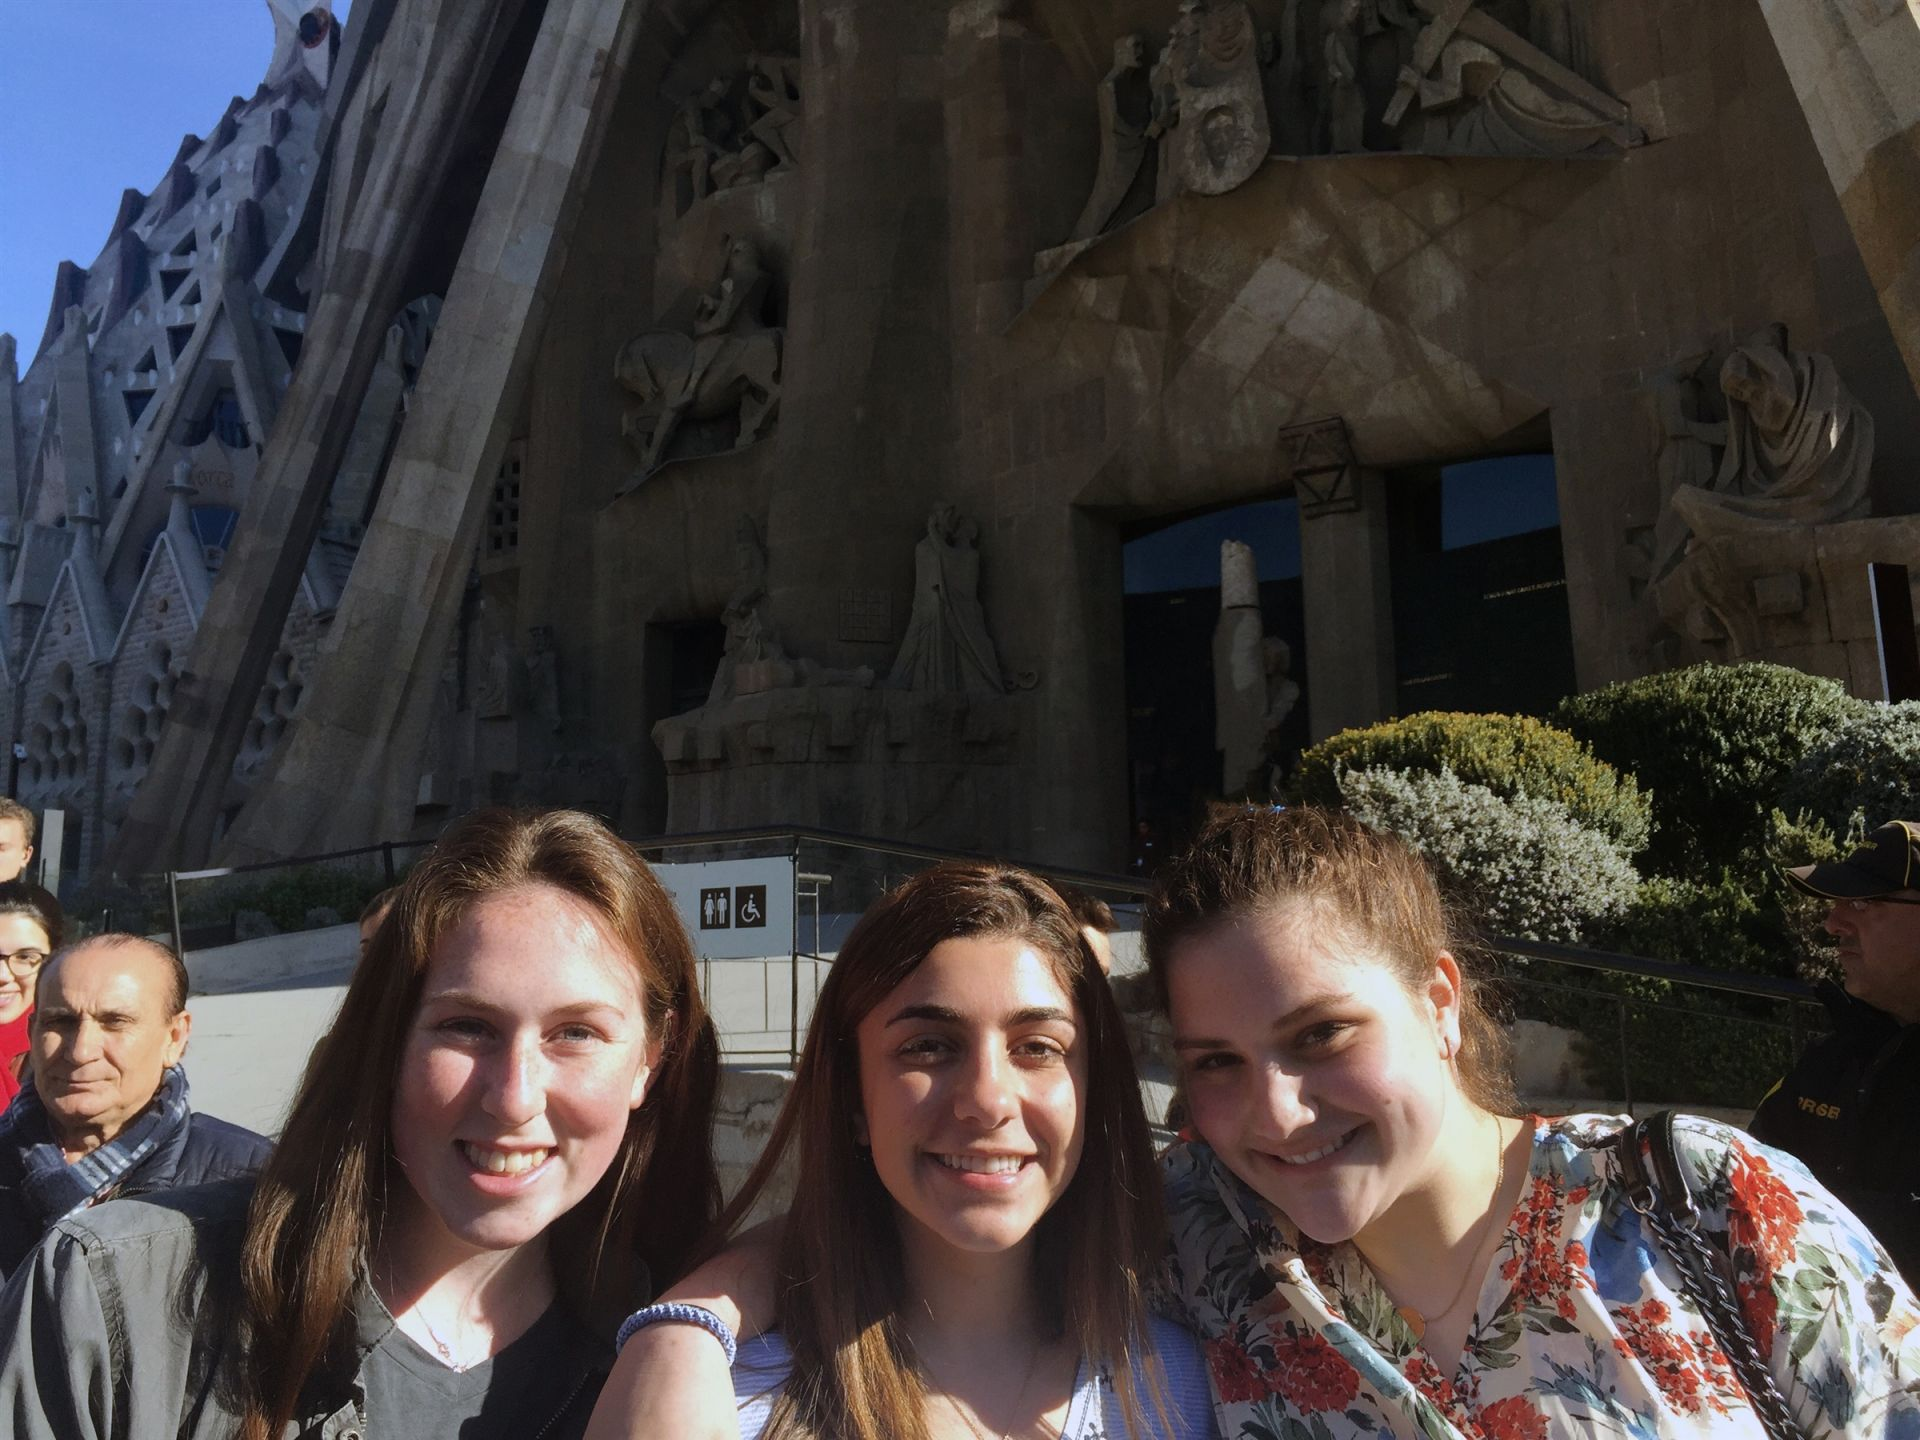 Students enjoyed a special Easter Mass at the Sagrada Familia, a large Catholic church in Barcelona!